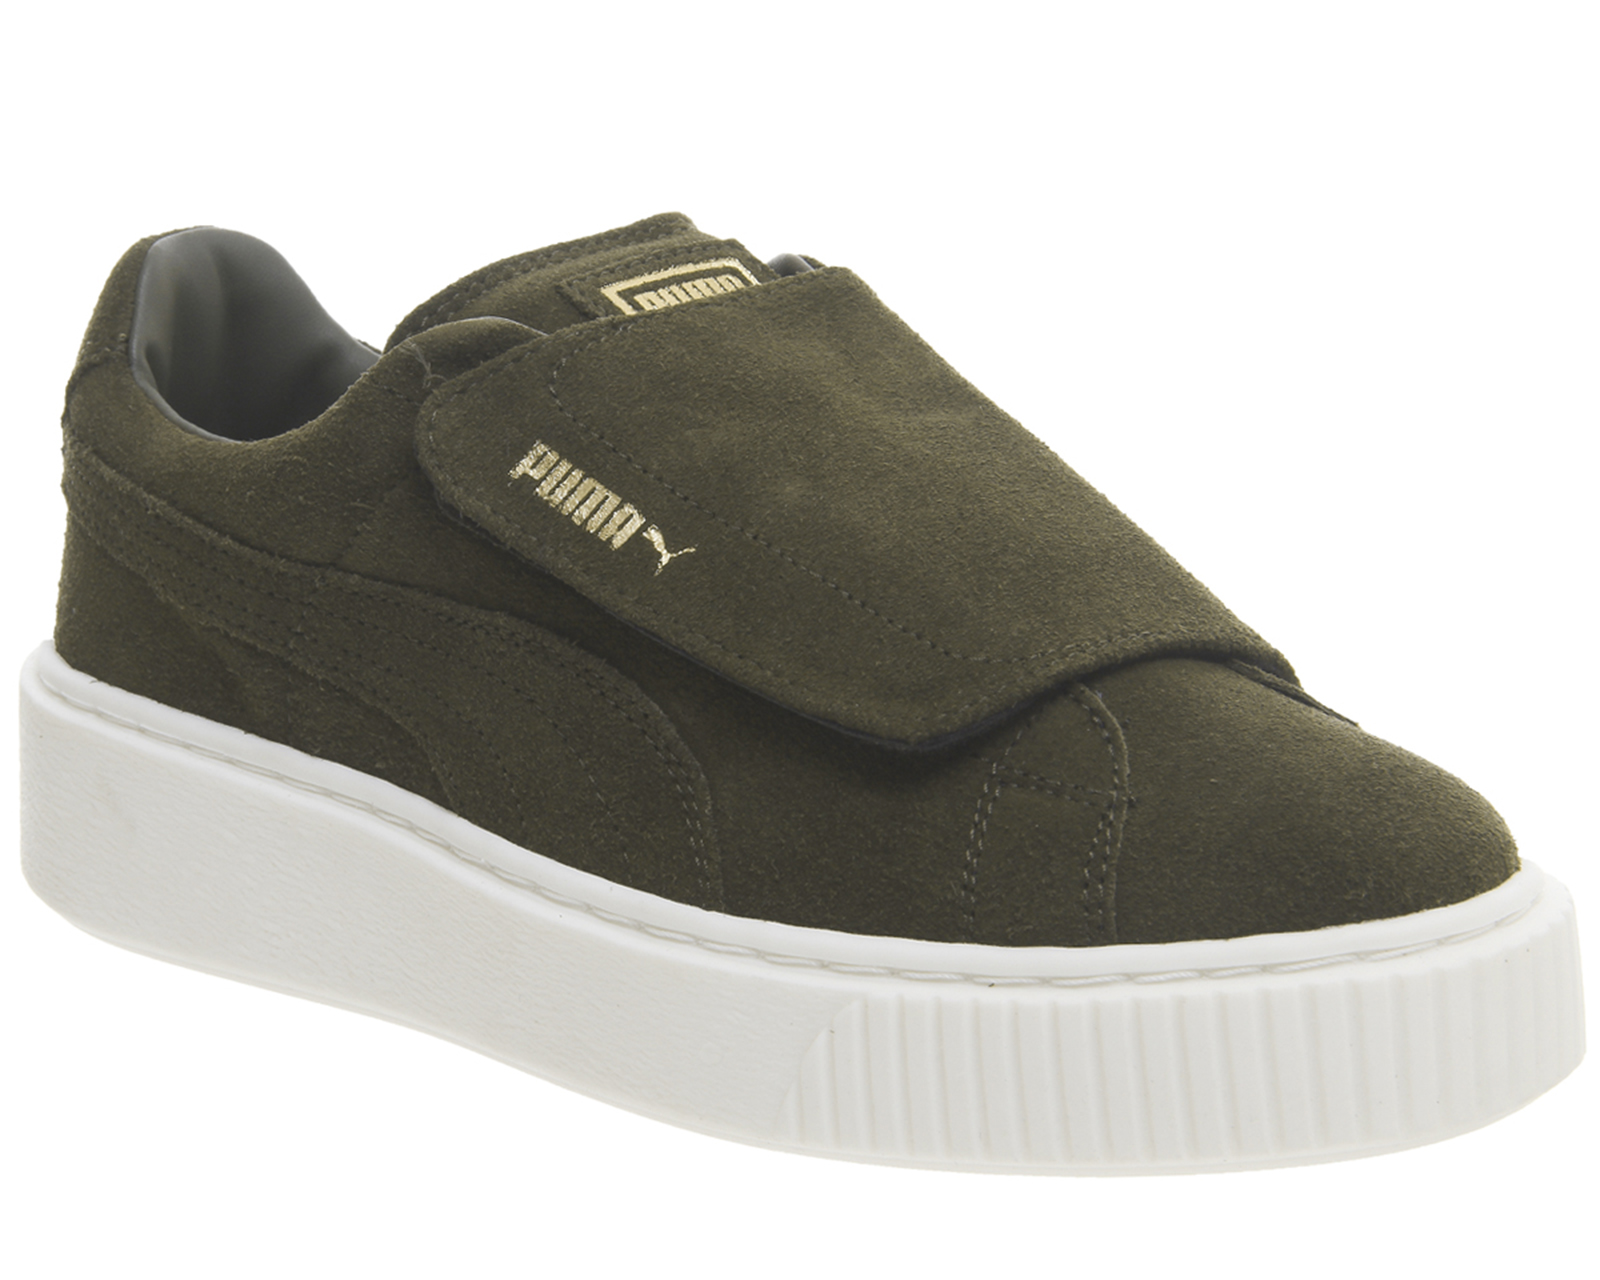 bc971c0d2 Sentinel Womens Puma Suede Platform Trainers OLIVE NIGHT VELVET ROPE  Trainers Shoes